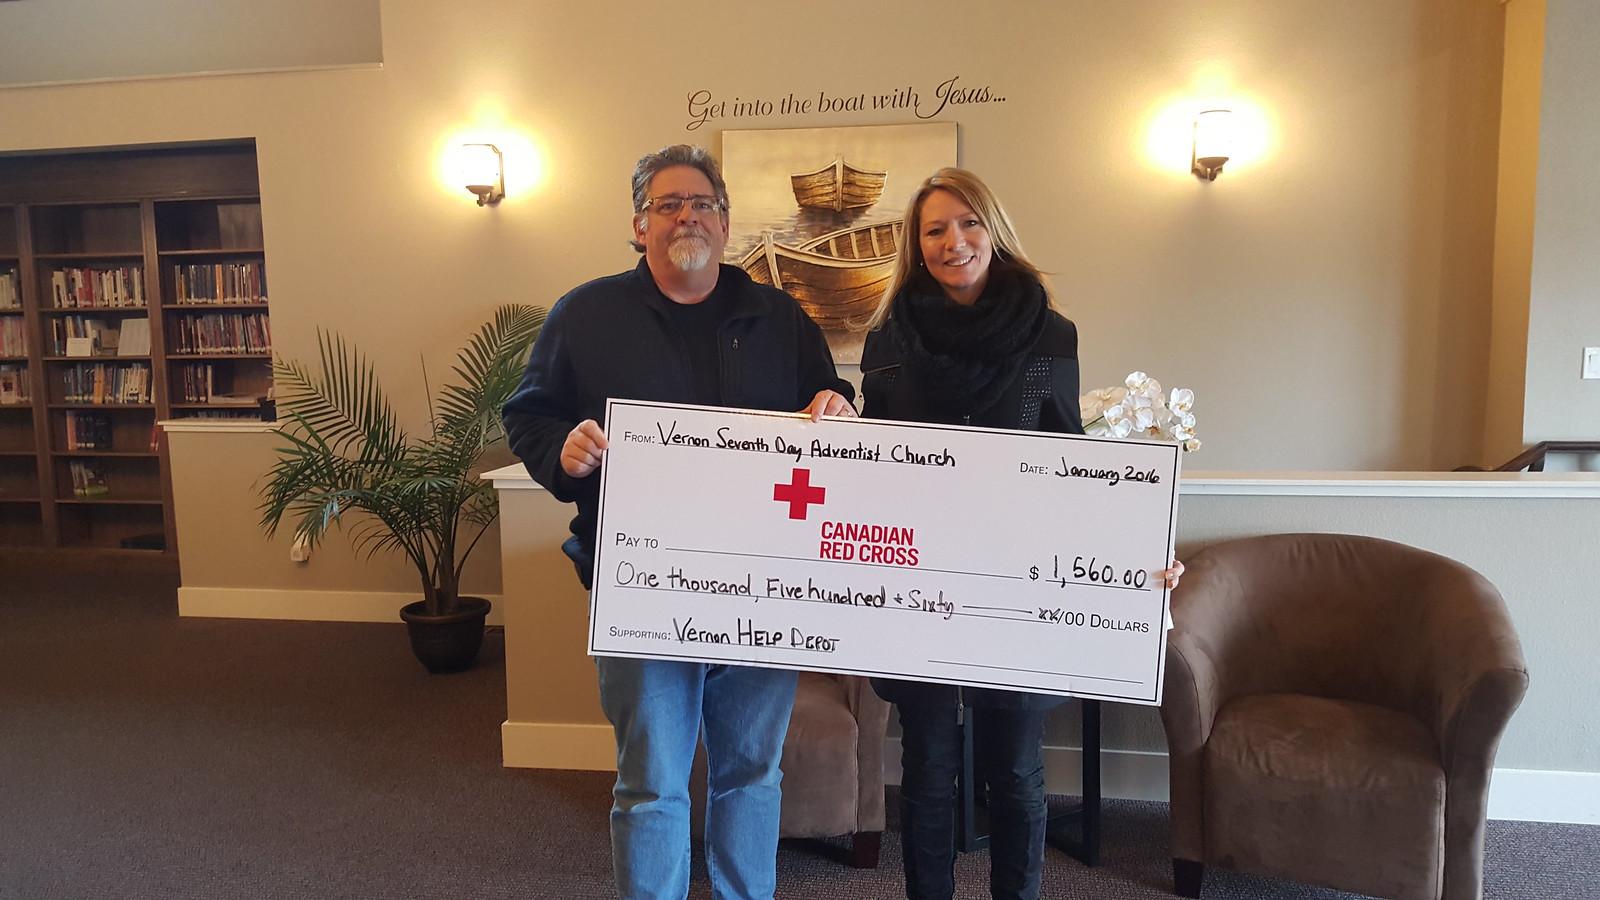 Red Cross cheque